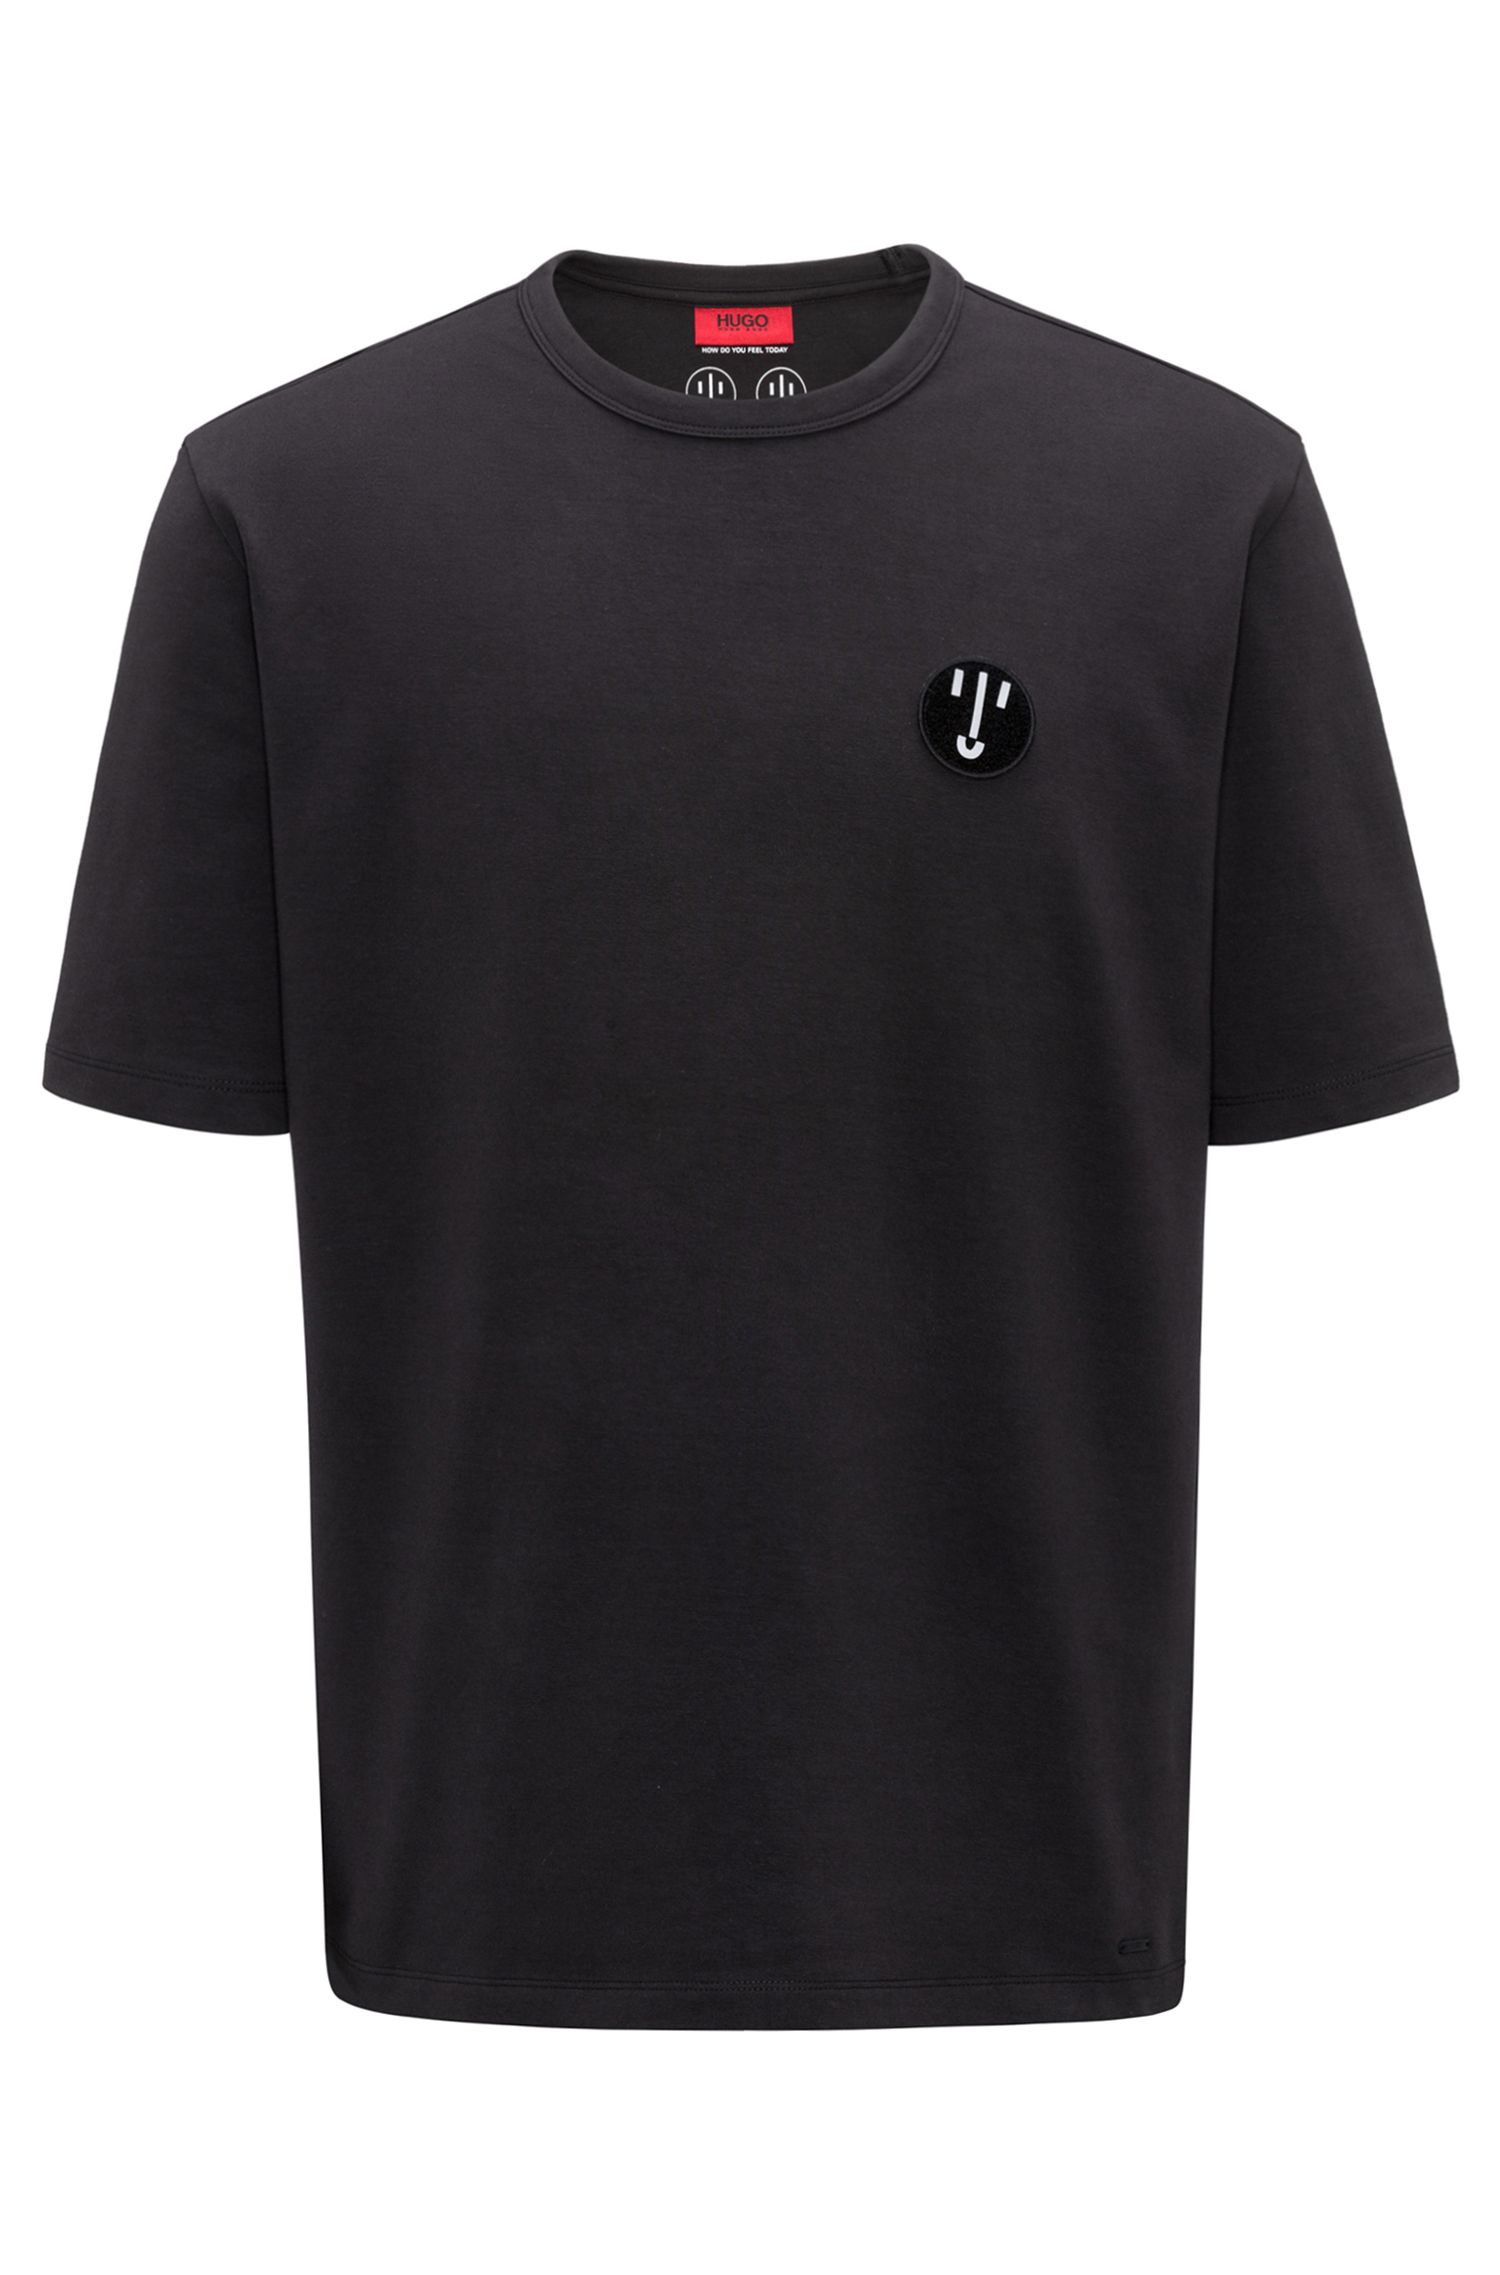 T-shirt Oversized Fit en coton stretch avec badge, Noir